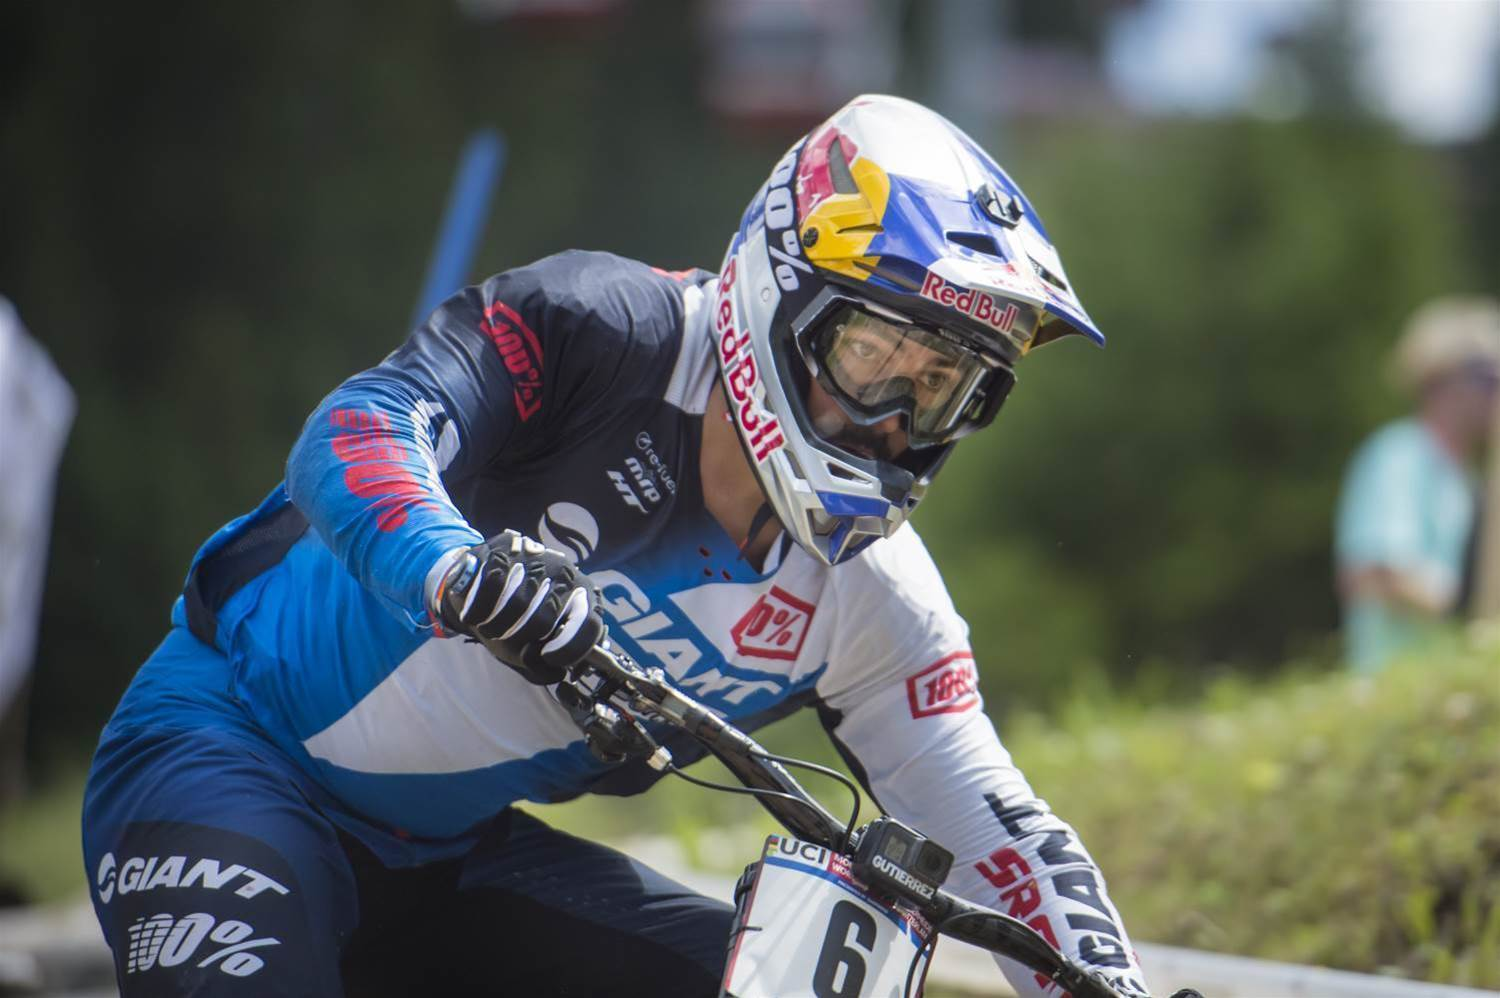 Minaar and Nicole win at Lenzerheide!